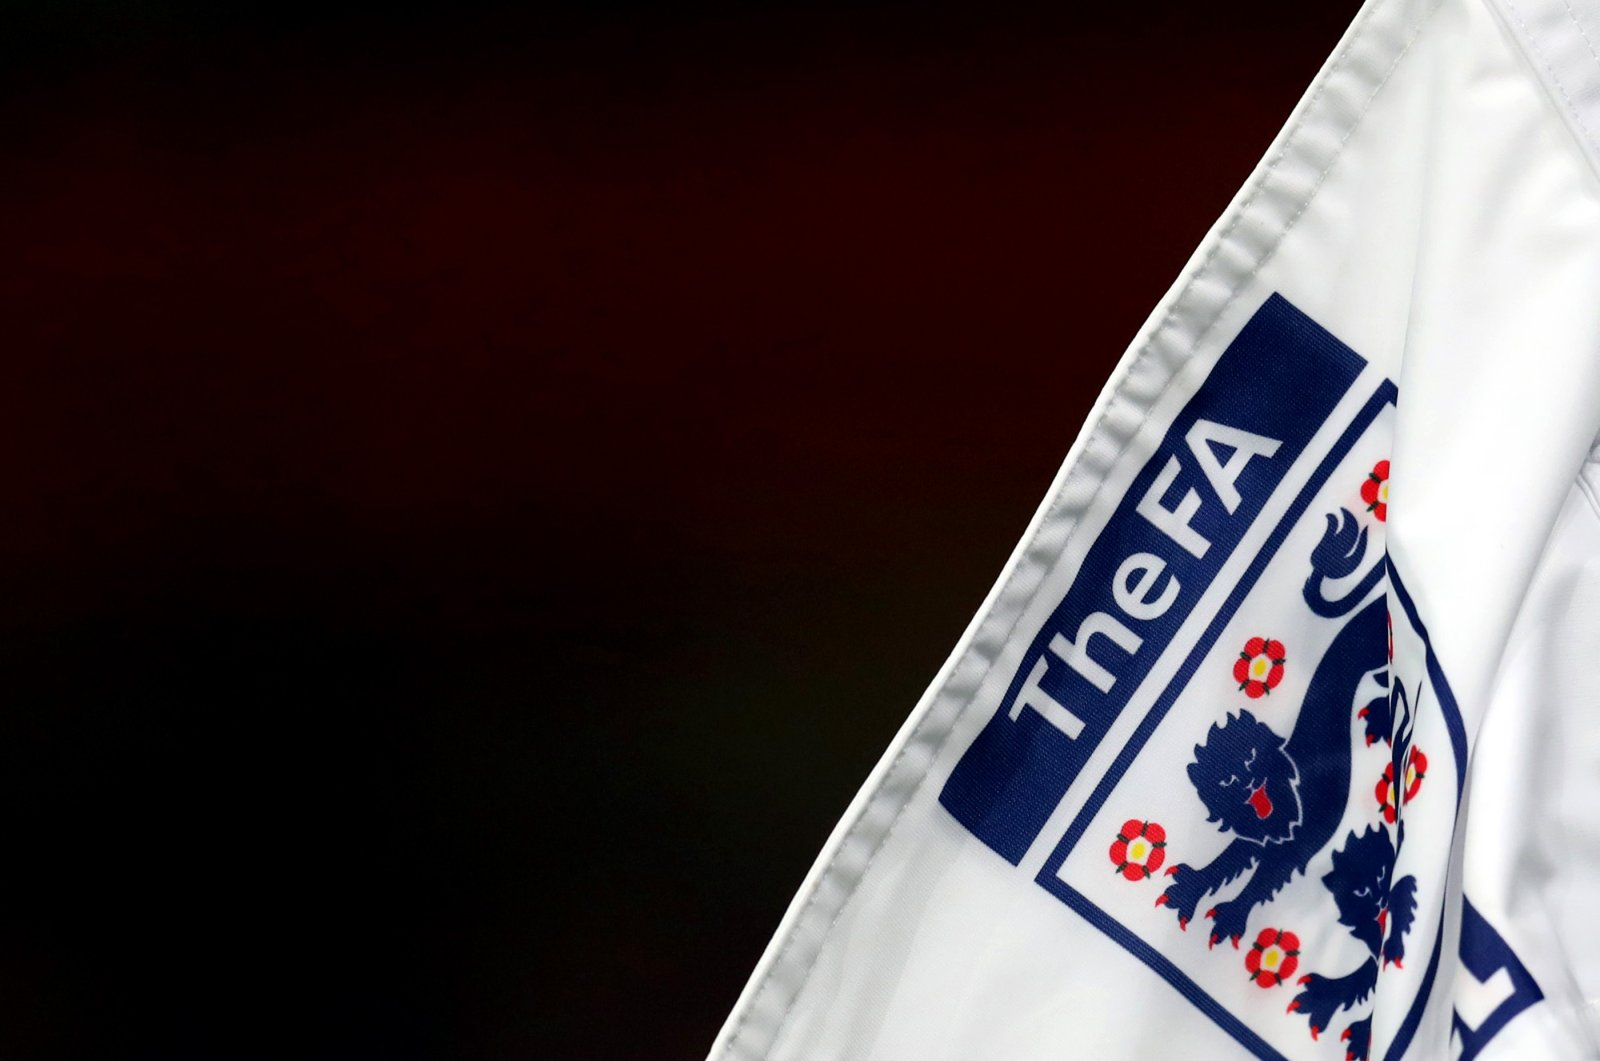 The FA logo and England badge on the corner flag ahead of the UEFA Euro Under 21 Qualifier match, in Wolverhampton, England, Nov. 13, 2020. (Getty Images)